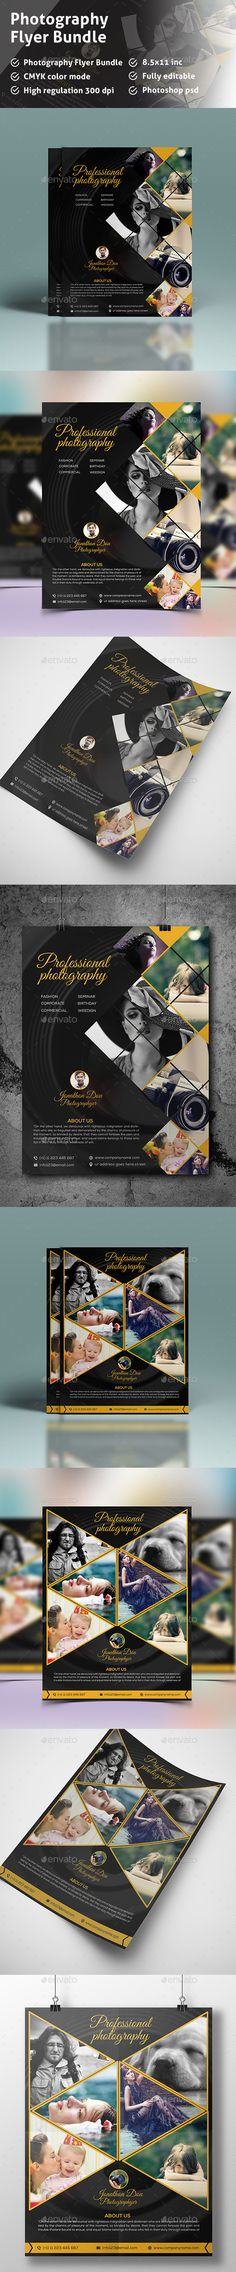 Professional Photography Flyers Photography Flyer Photography